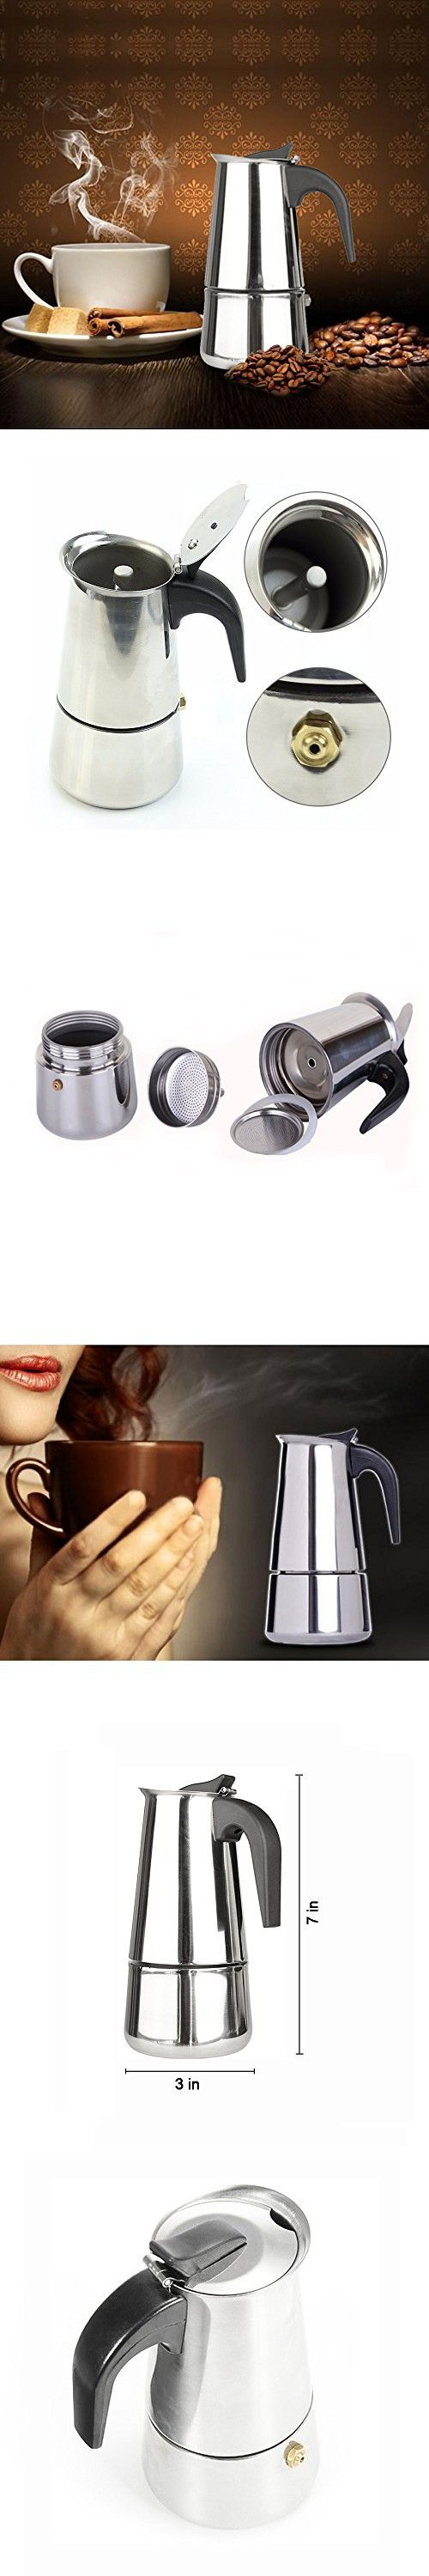 Stainless steel stovetop espresso maker 10 cup - Stovetop Espresso Moka Pot Stainless Steel Coffee Maker 4 Cup